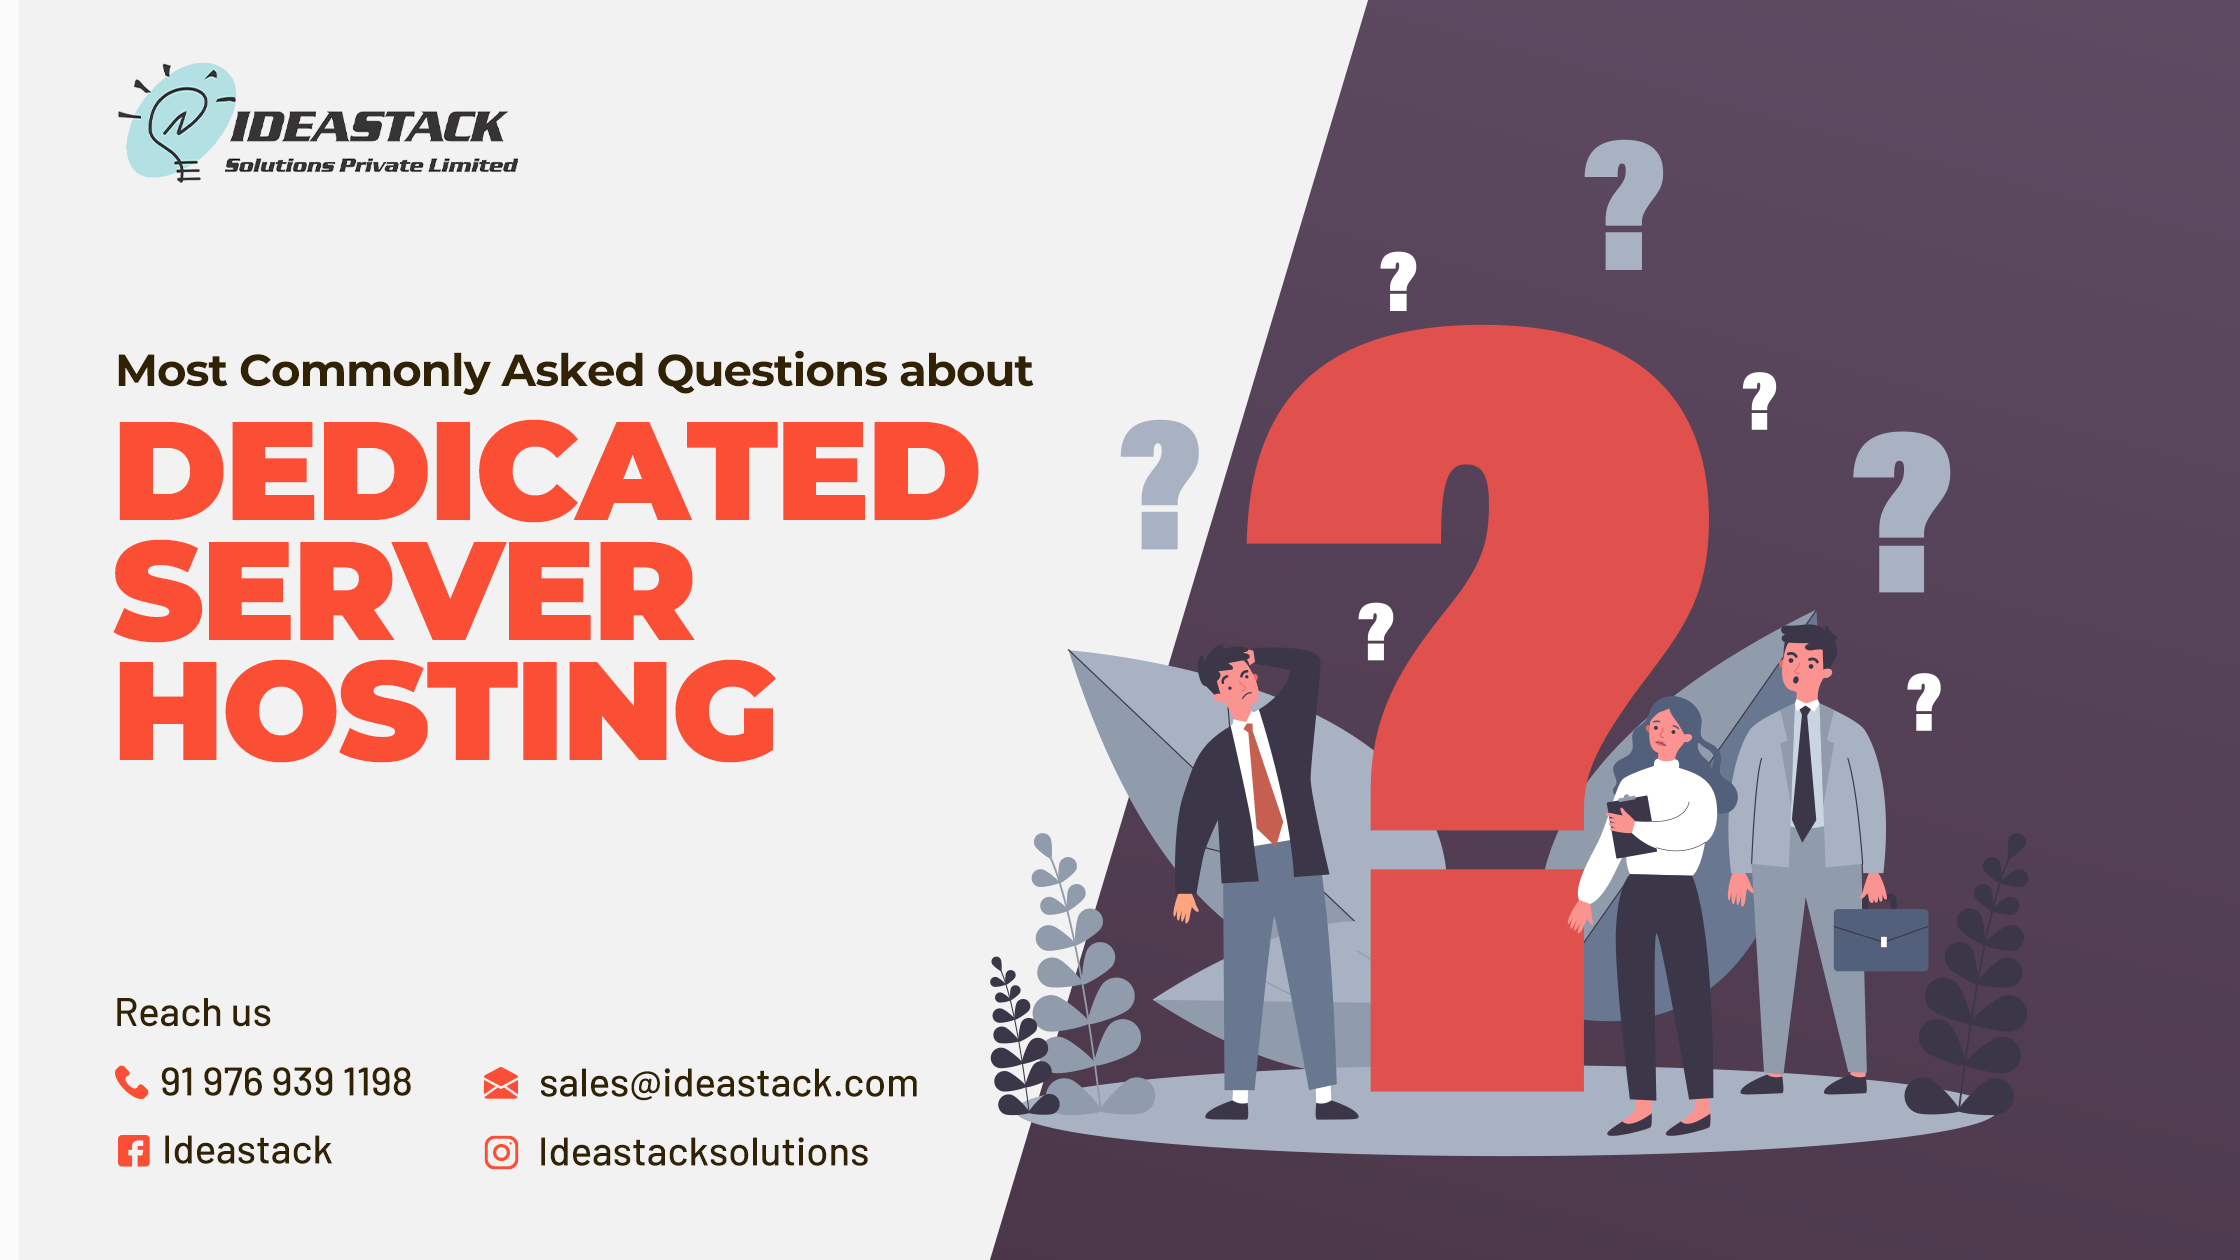 Most Commonly Asked Questions About Dedicated Server Hosting